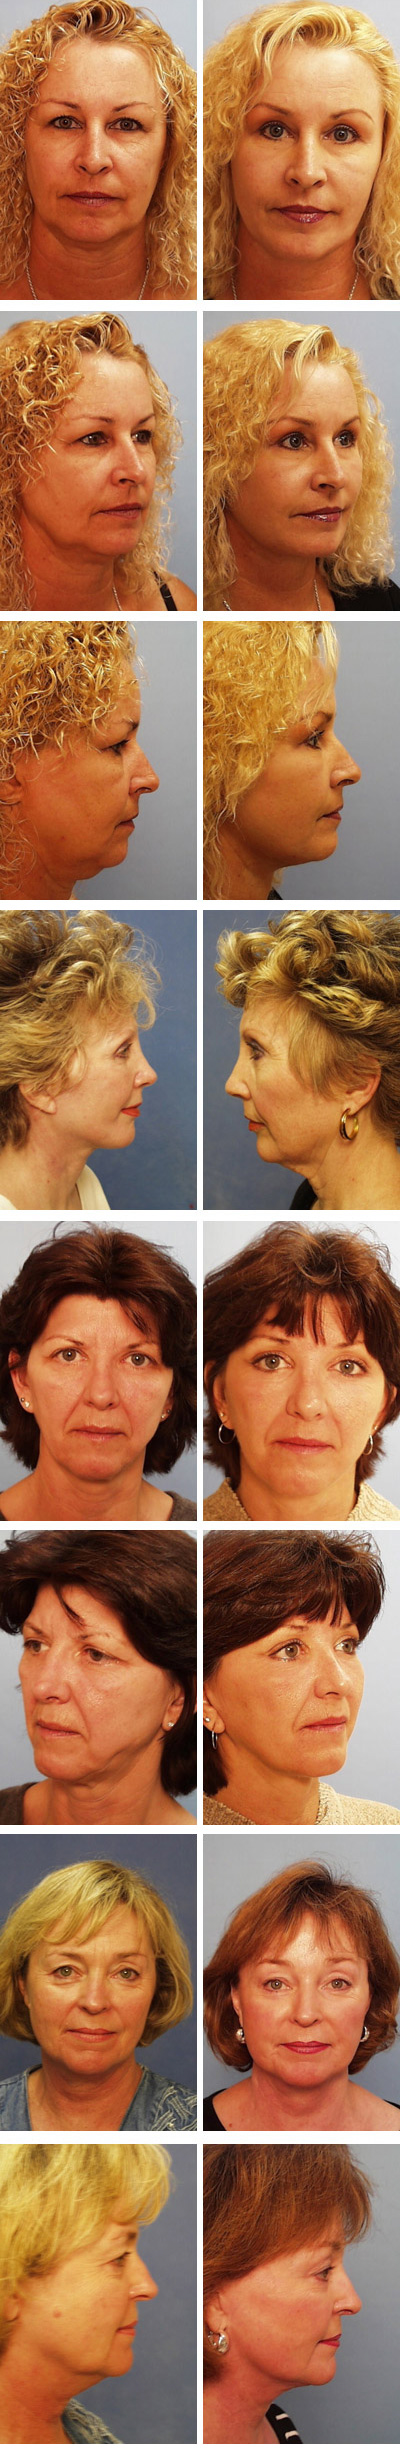 Before and after - patient photos 3